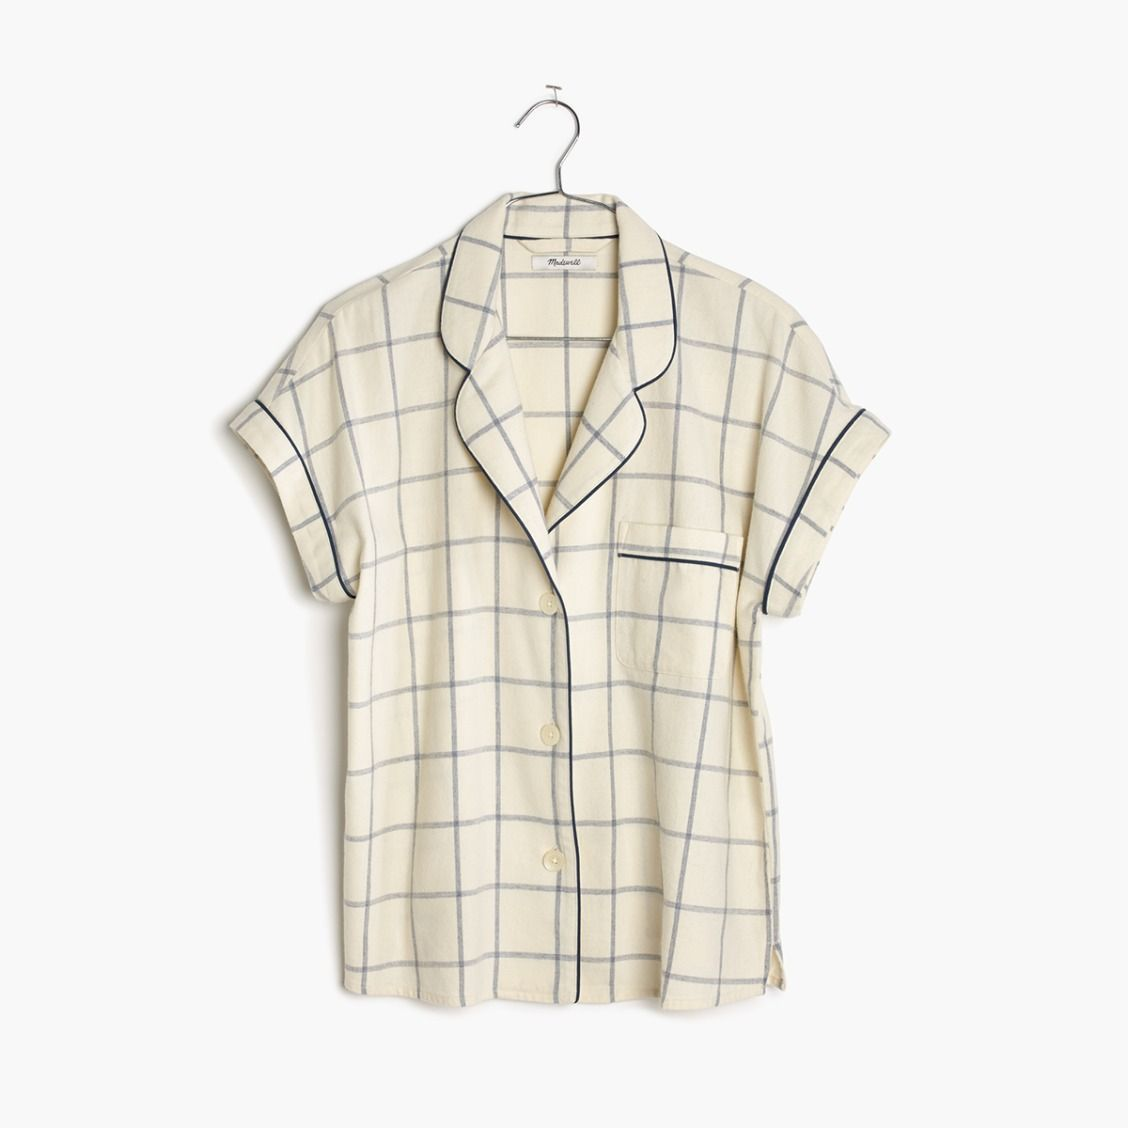 madewell flannel bedtime pajama top.